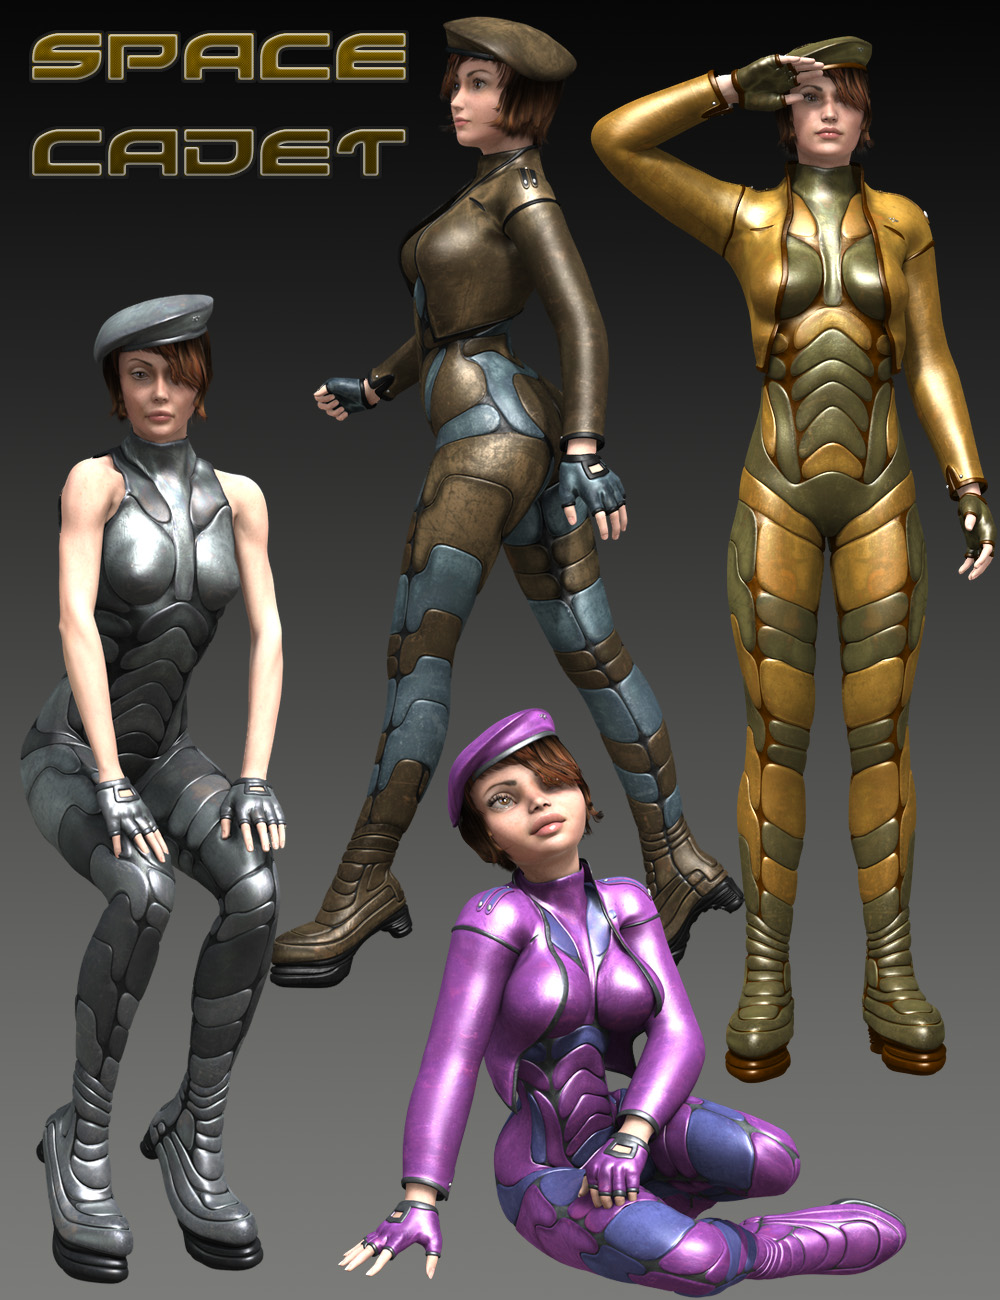 Space Cadet for Genesis by: midnight_stories, 3D Models by Daz 3D